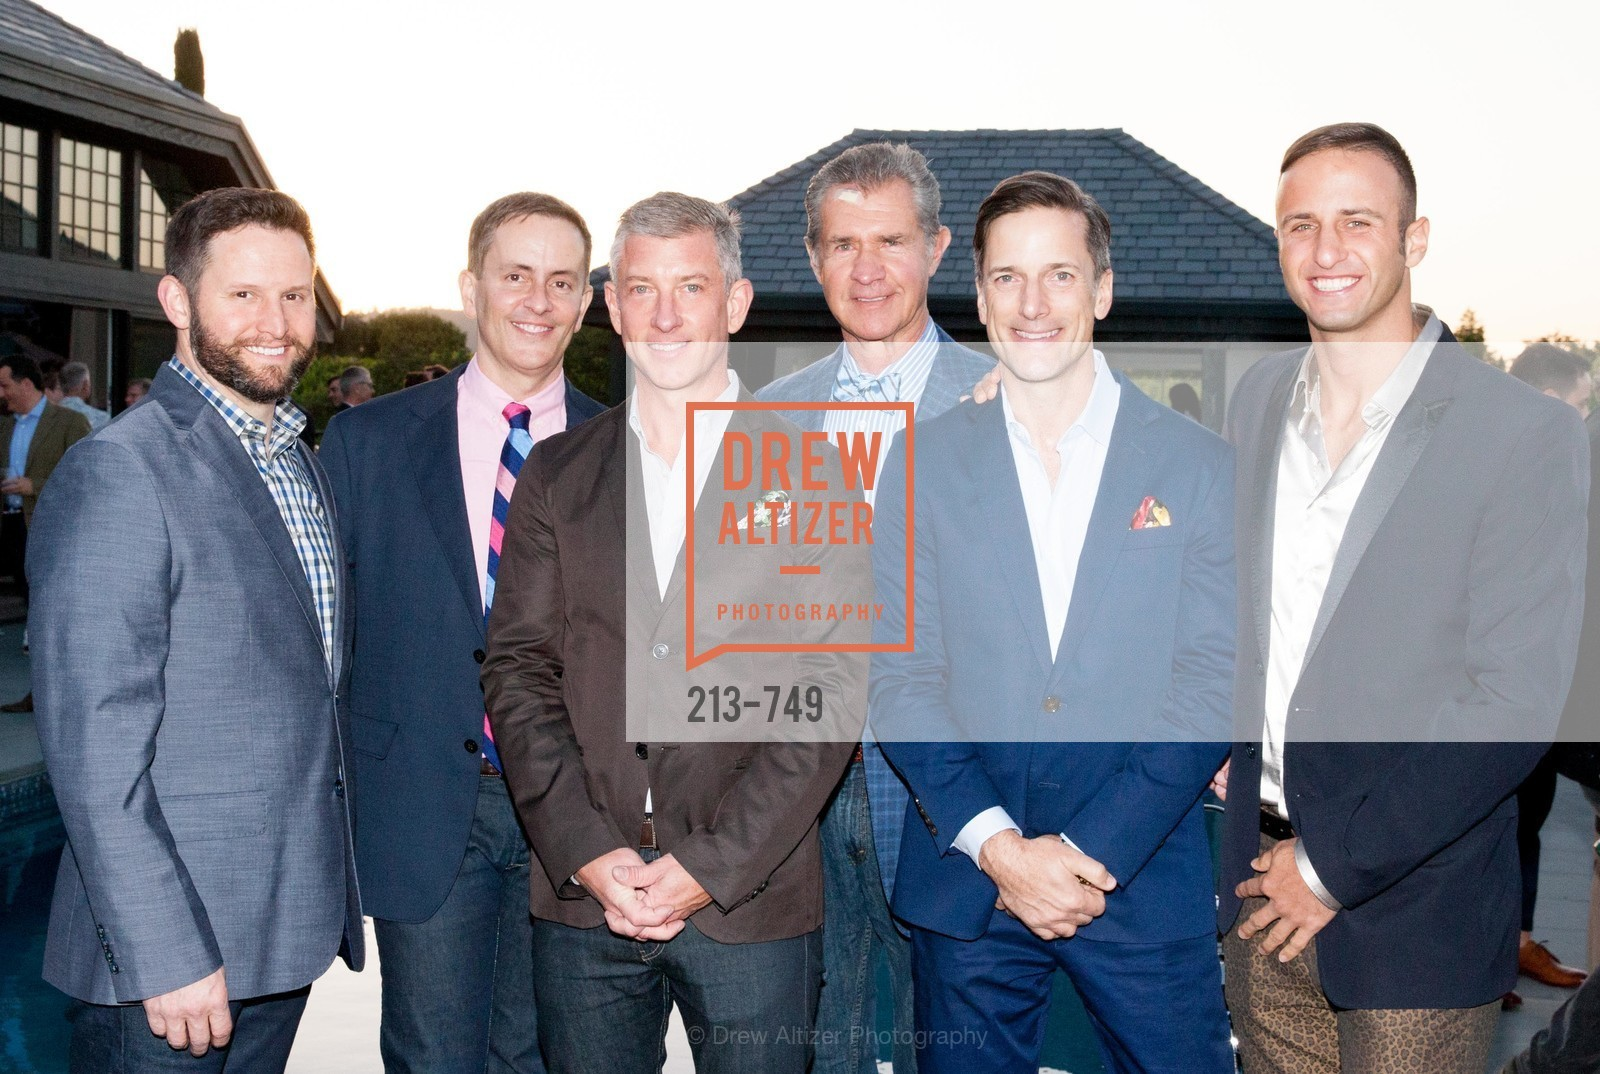 Gerry Etcheberry, Darren Higman, John Mcilwee, Glen Lajeski, Bill Damaschke, Ari Kofayan, PETER COPPING Meets and Greets OSCAR DELA RENTA Clients and Associates at NEIMAN MARCUS, US, May 22nd, 2015,Drew Altizer, Drew Altizer Photography, full-service agency, private events, San Francisco photographer, photographer california